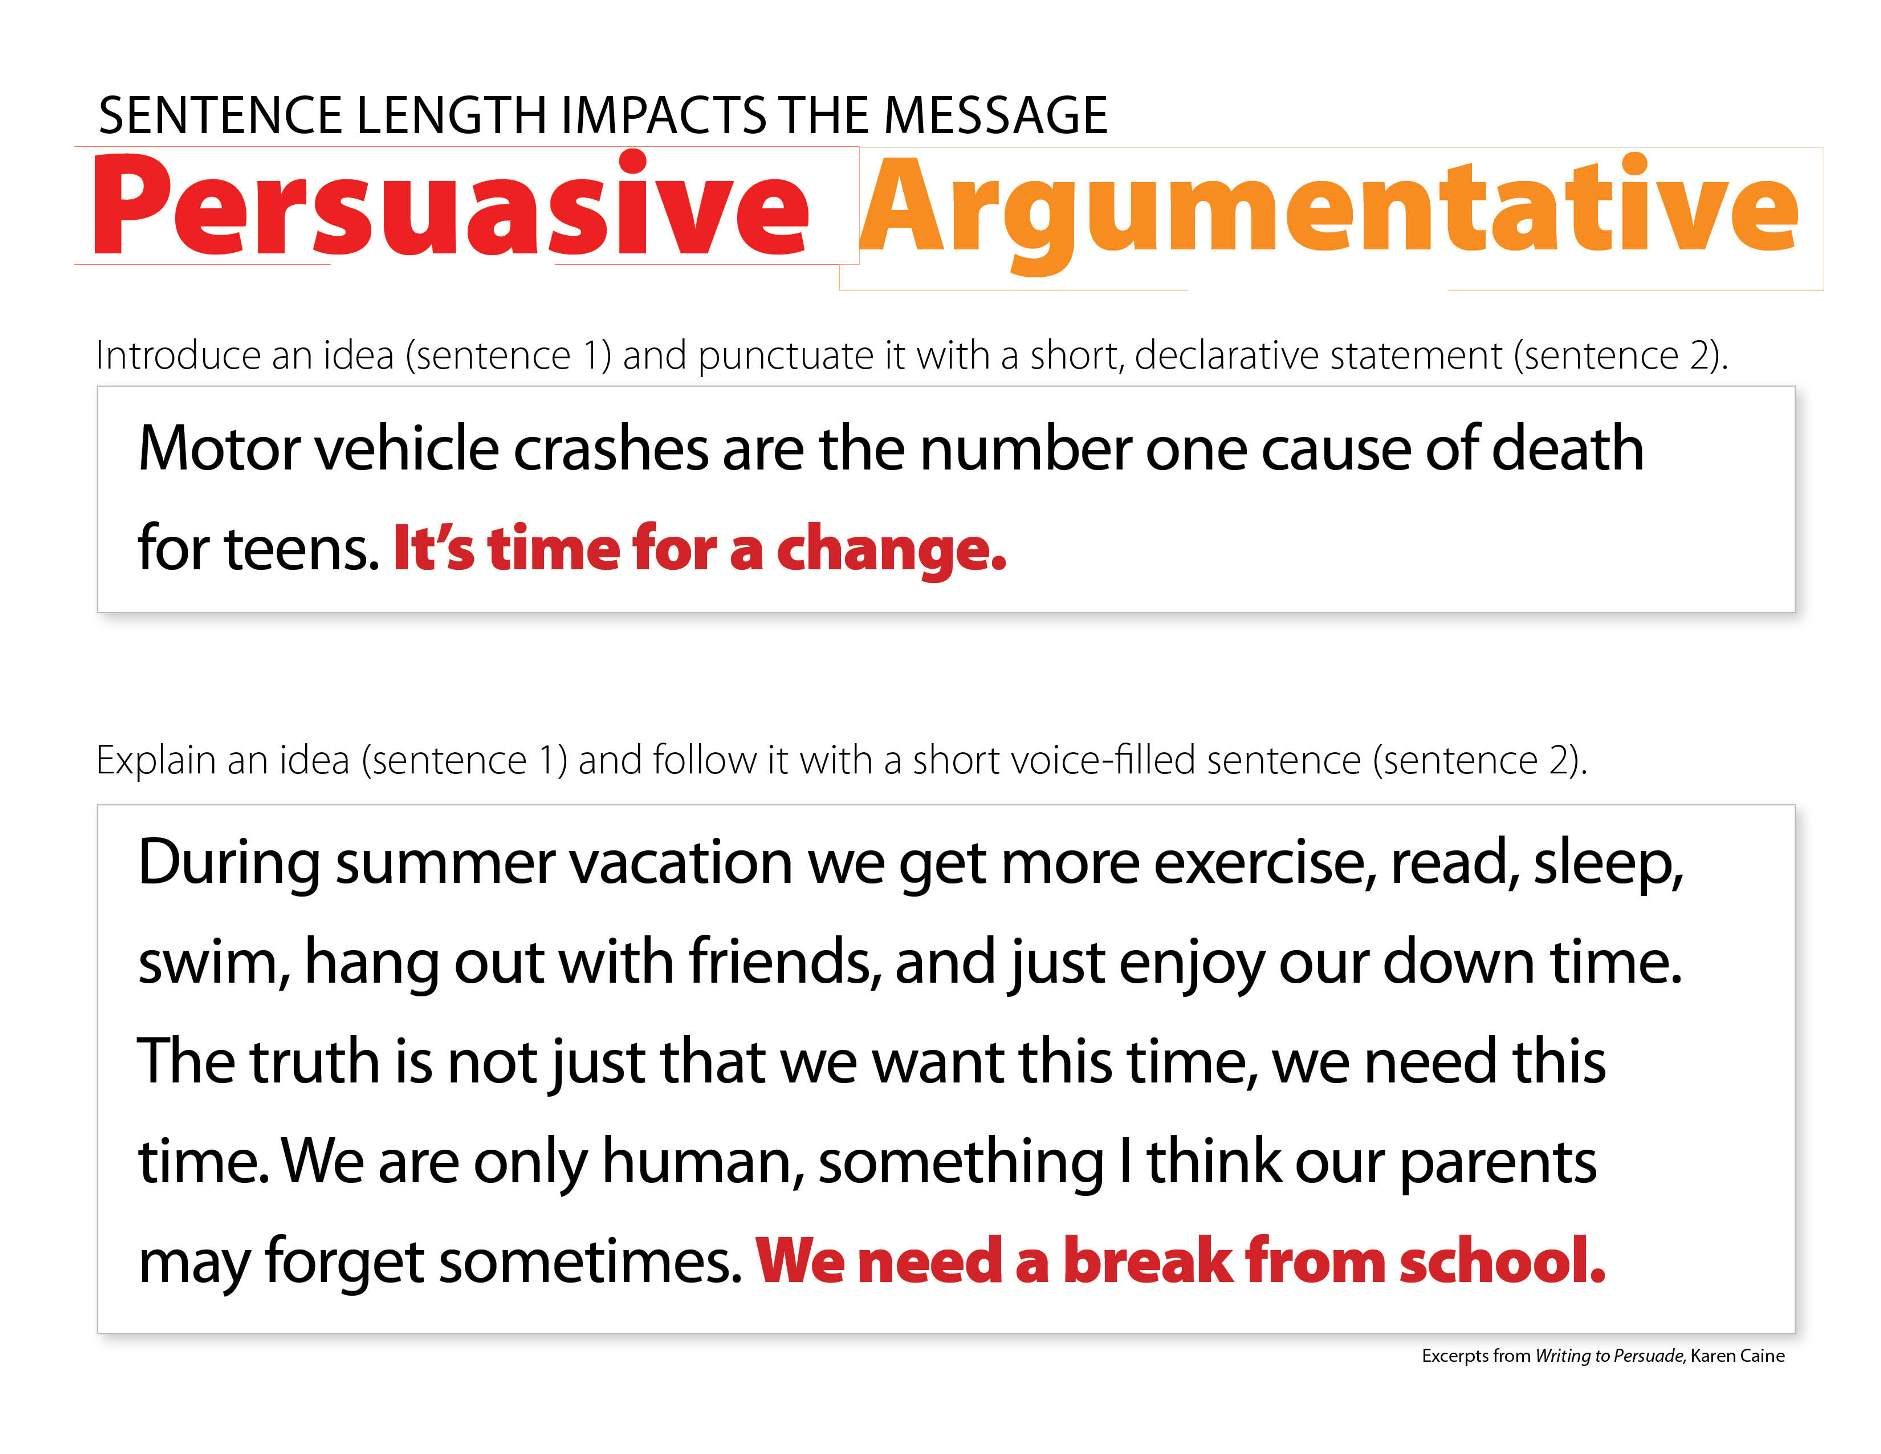 Persuasive argumentative writing sentence length impacts message